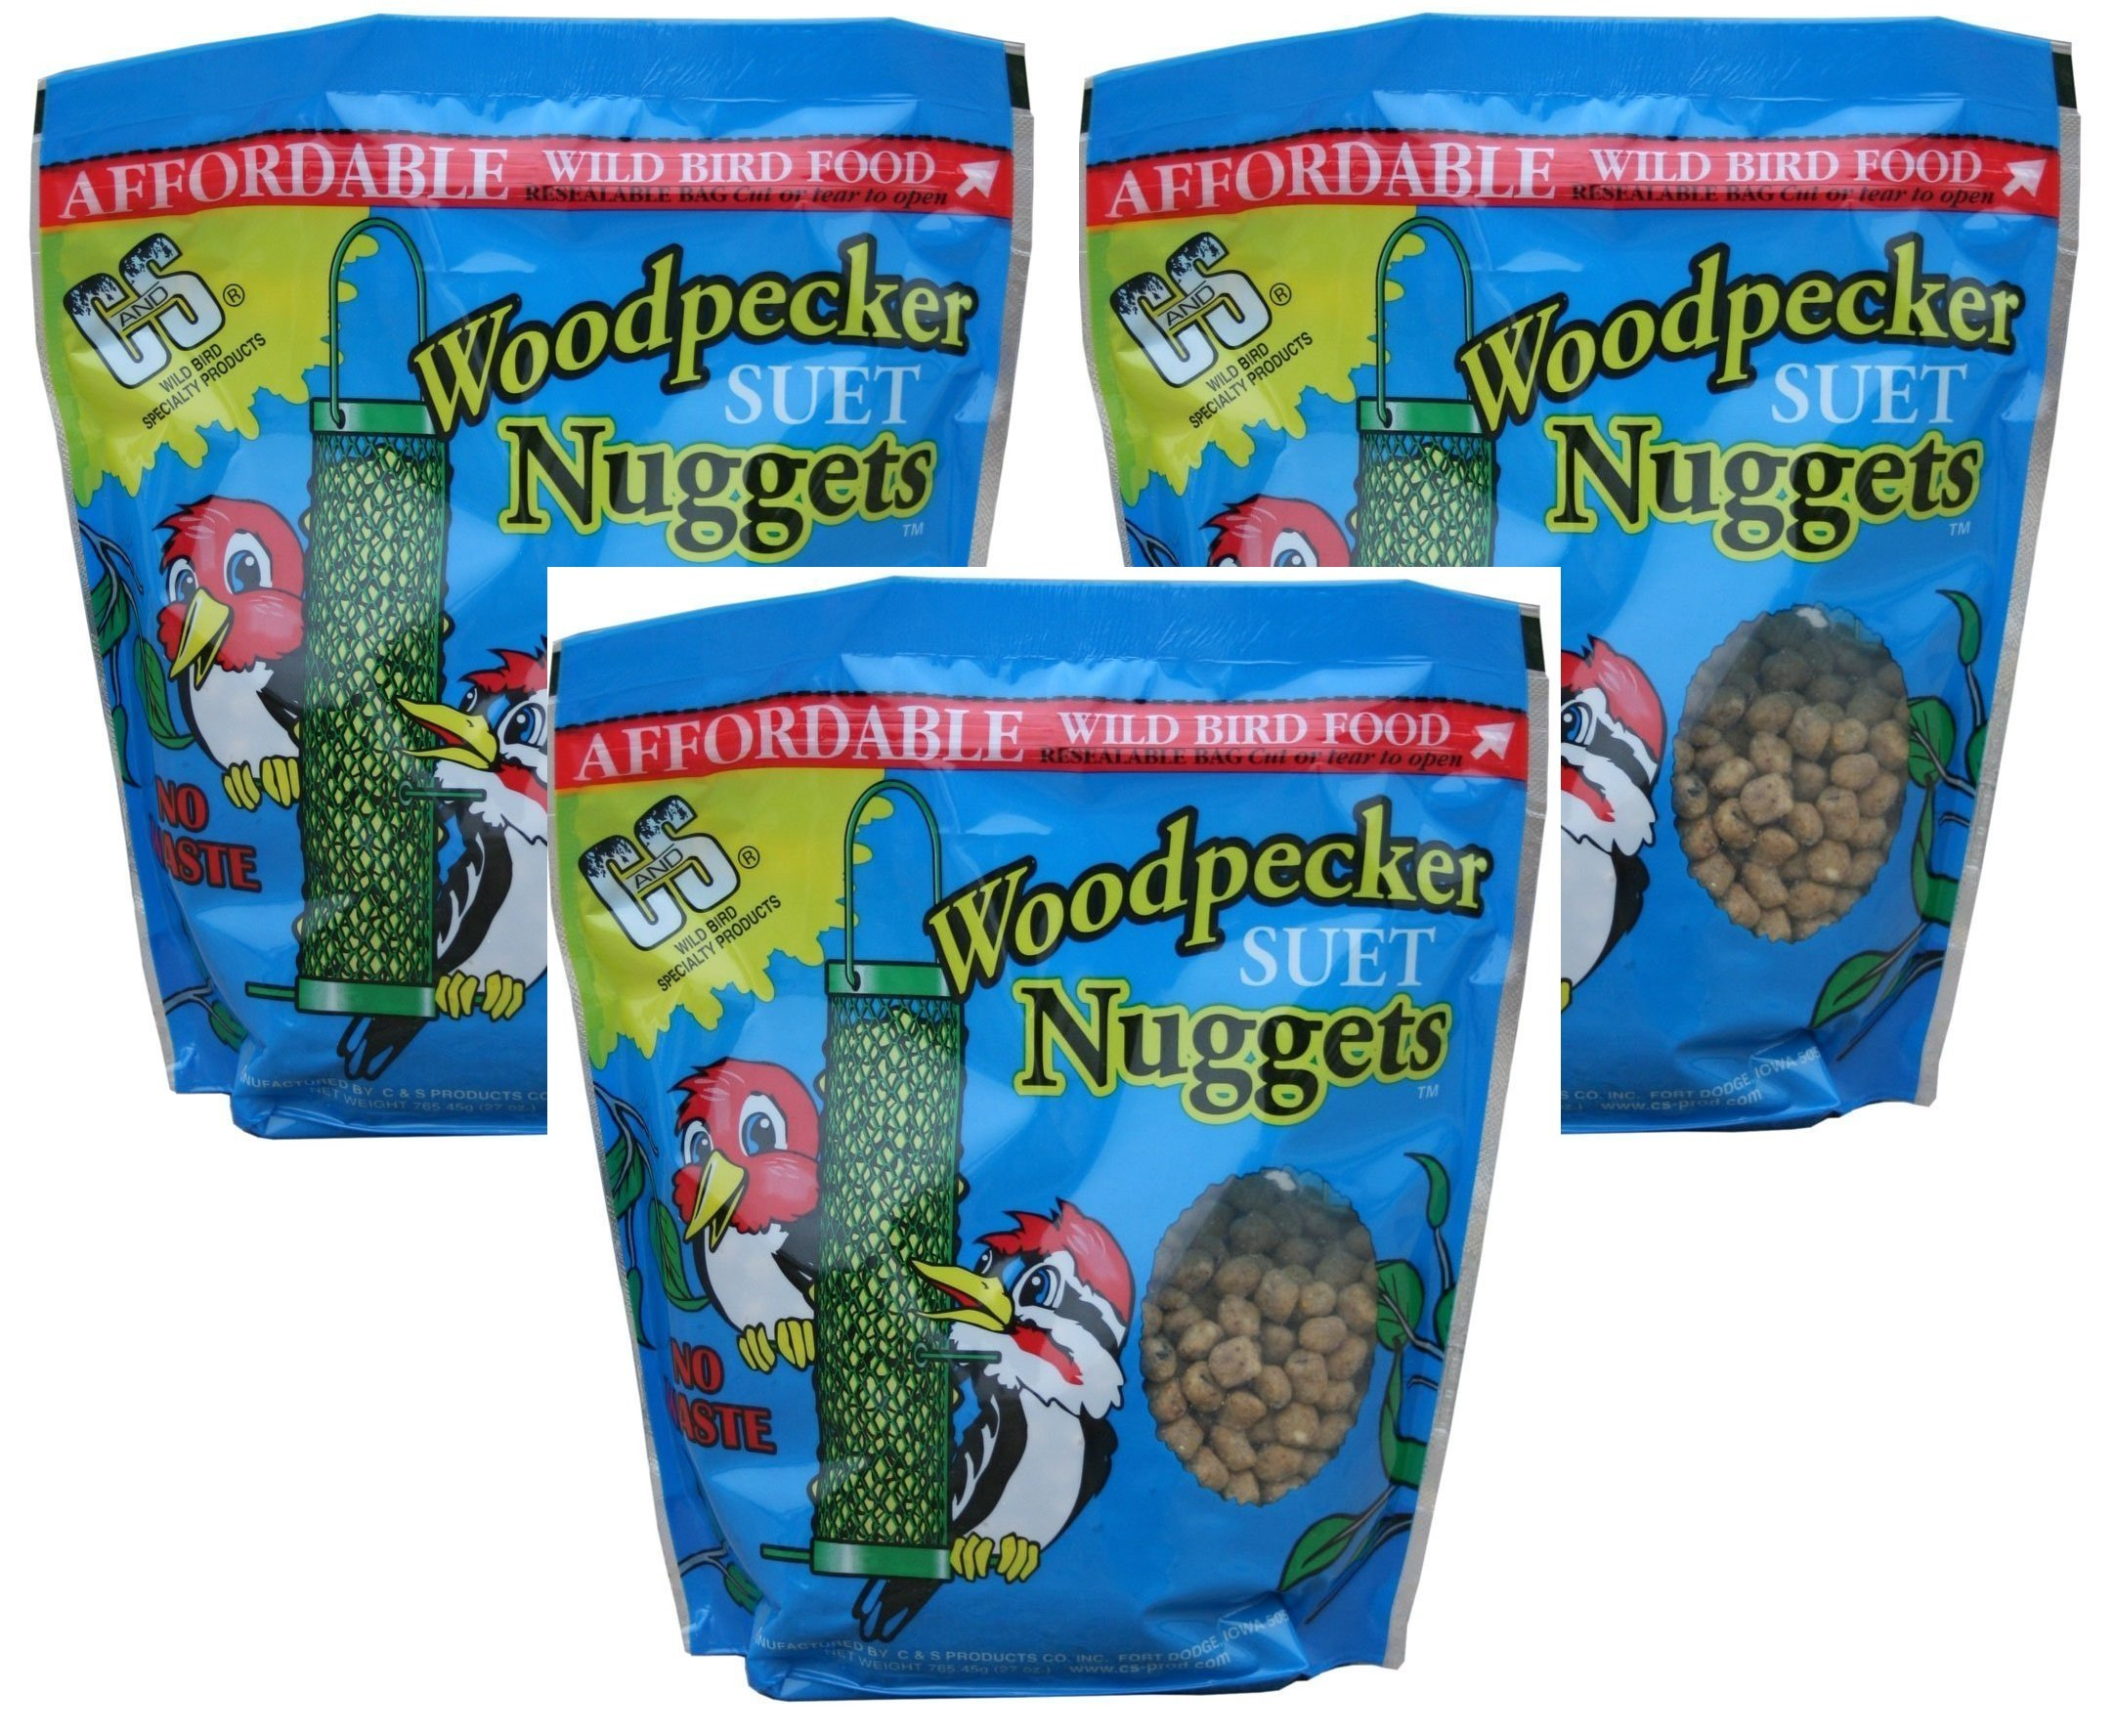 C and S Woodpecker Suet Nuggets (Pack of 3)